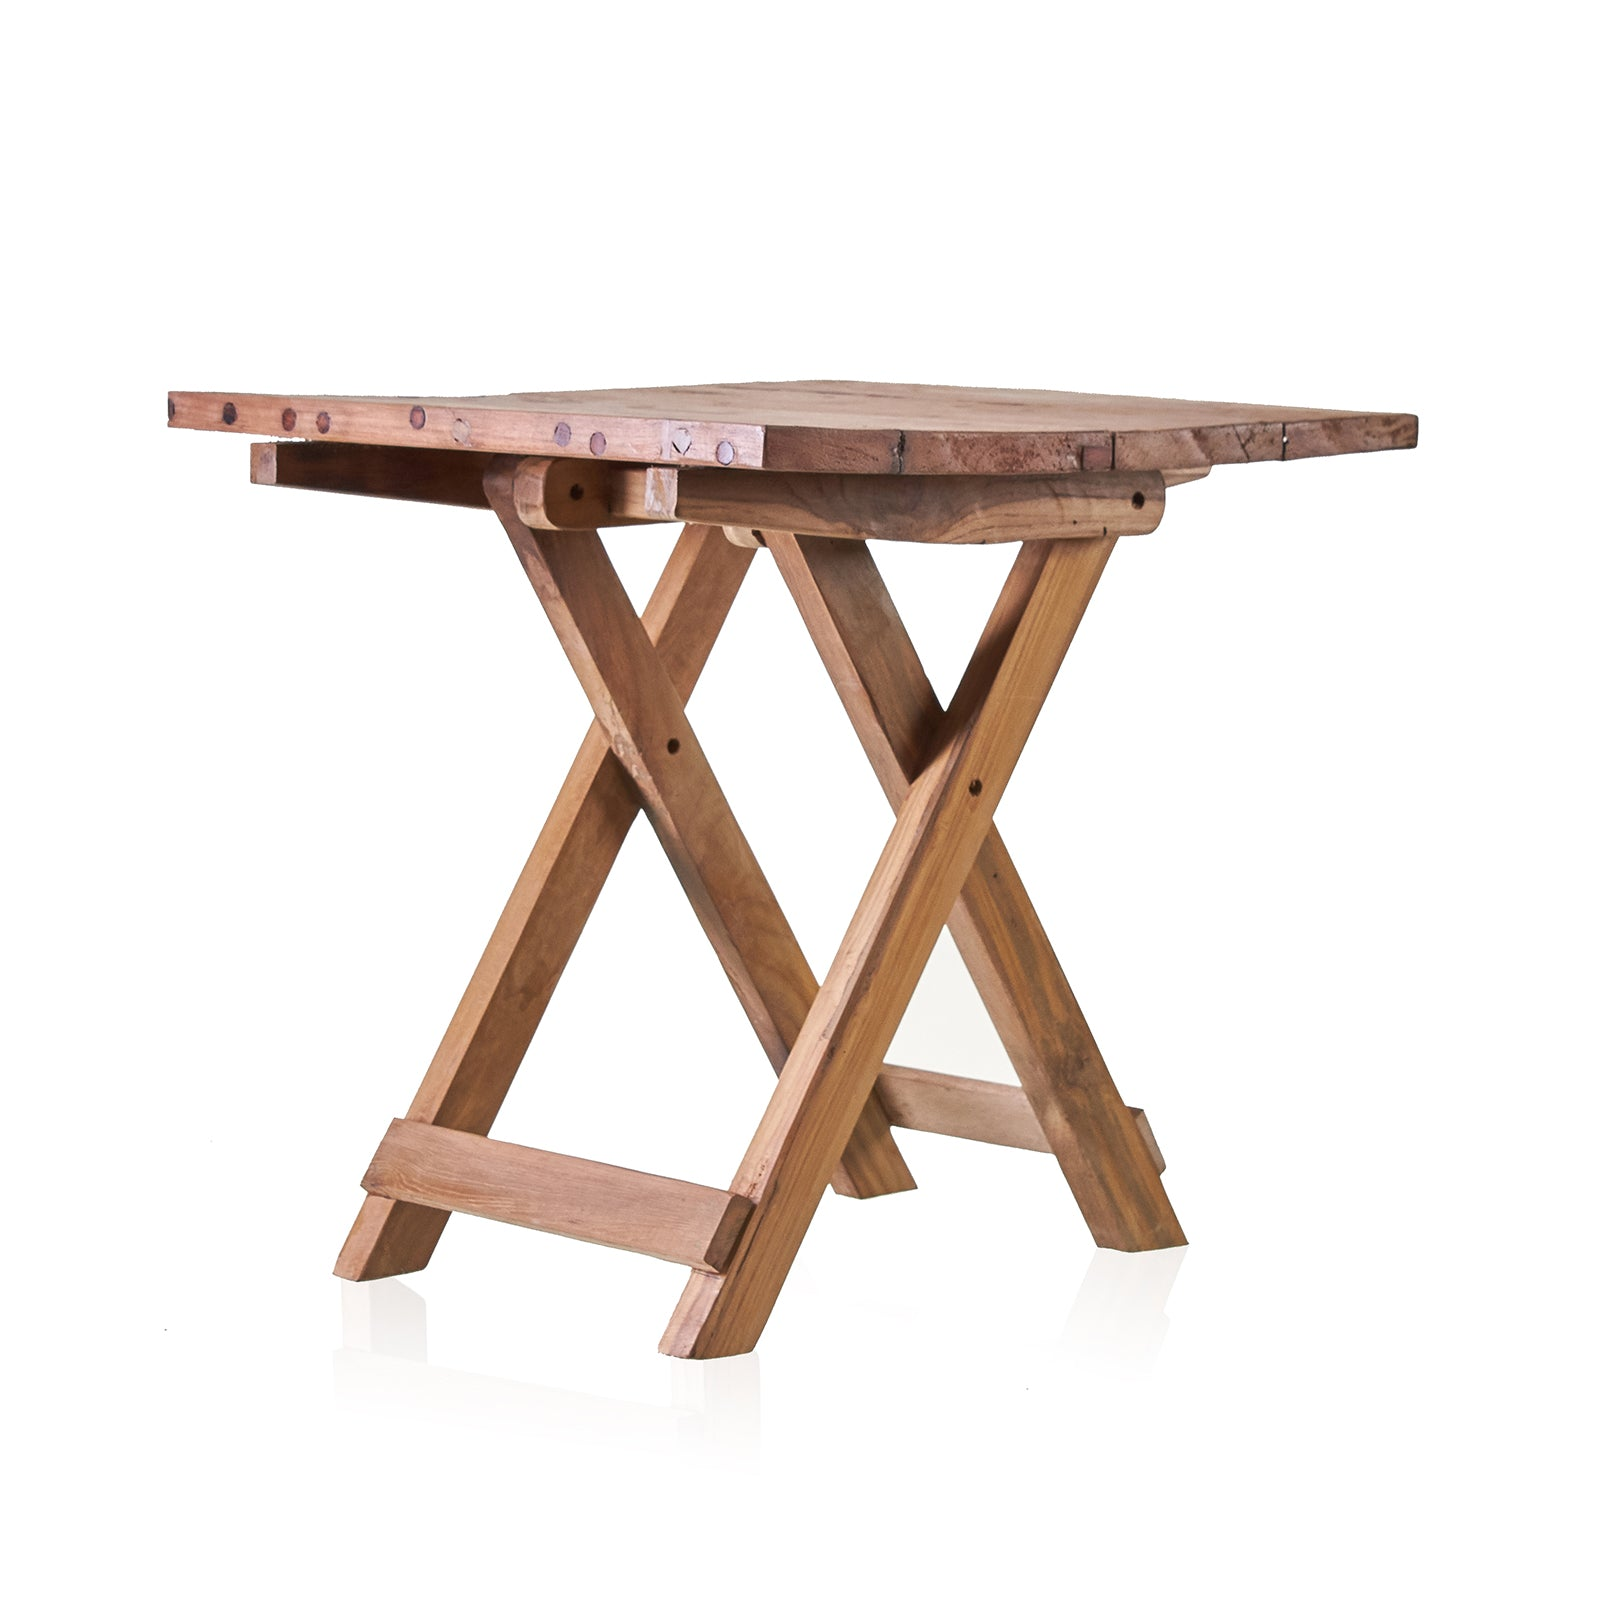 Square Folding Coffee Table - 50cm - Recycled Wood